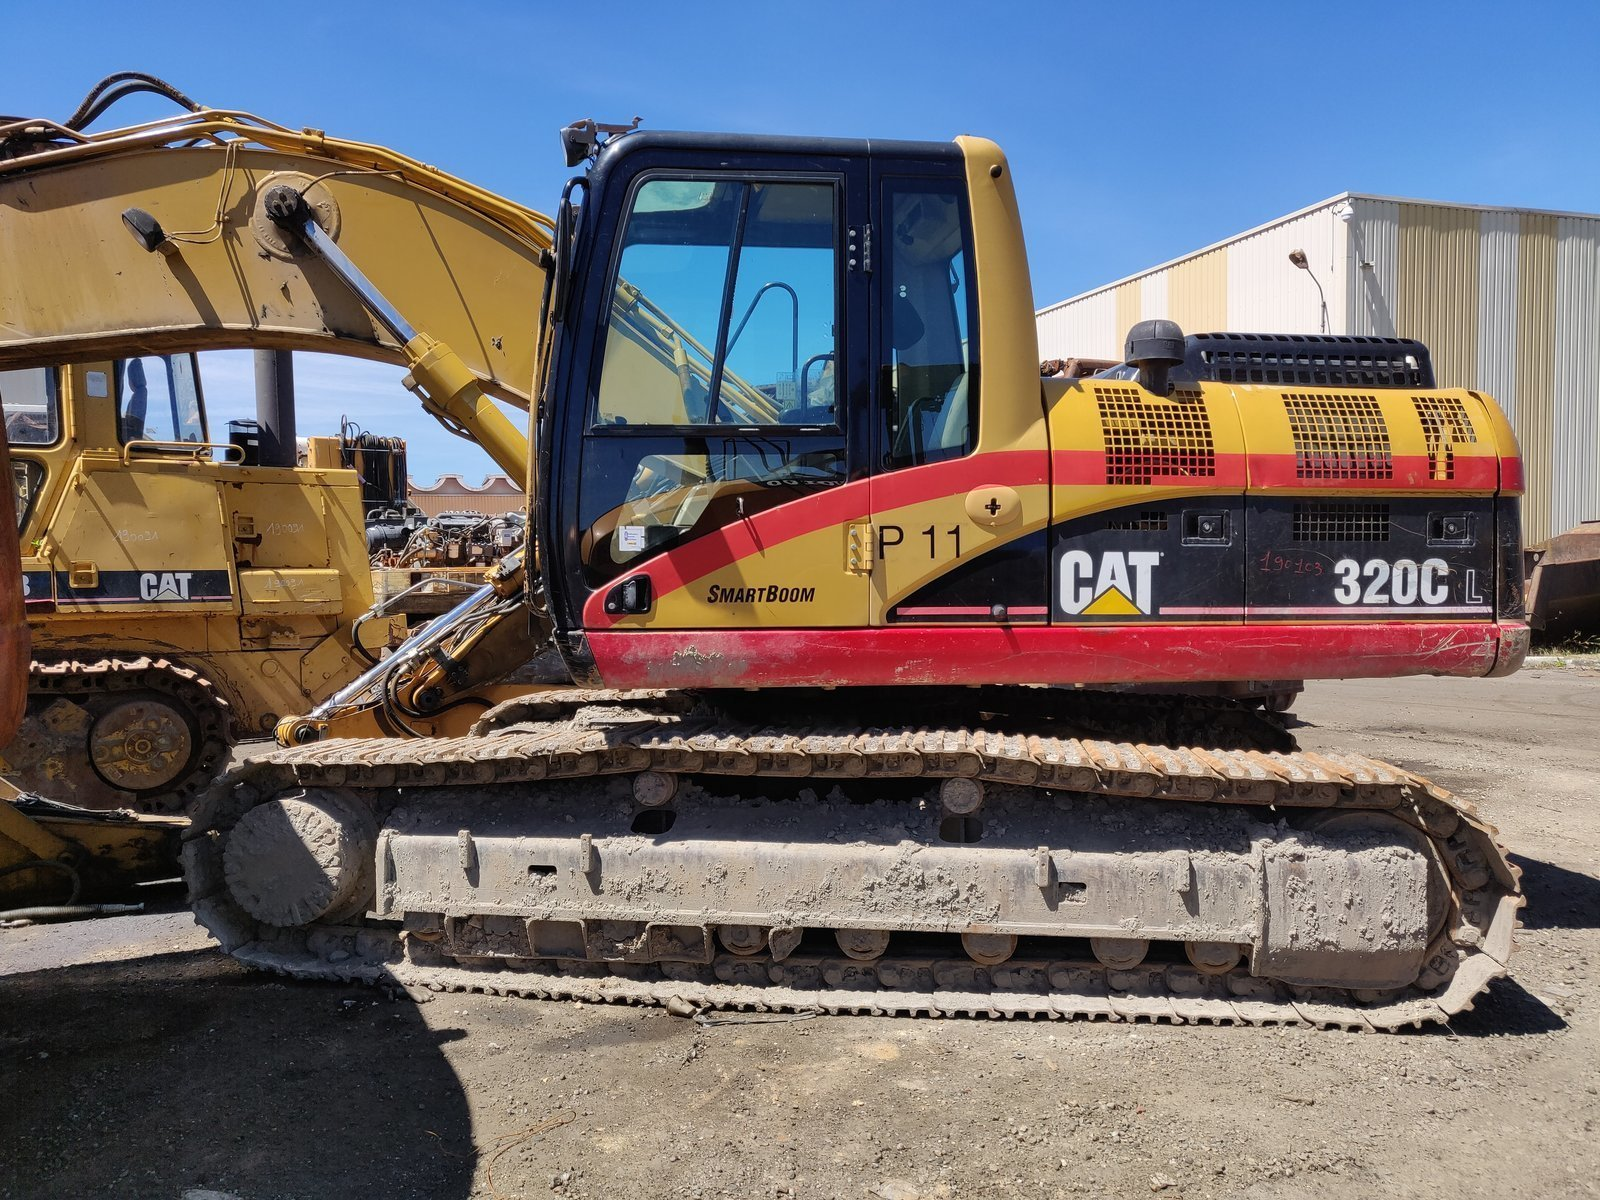 Tracks excavator CATERPILLAR 320C